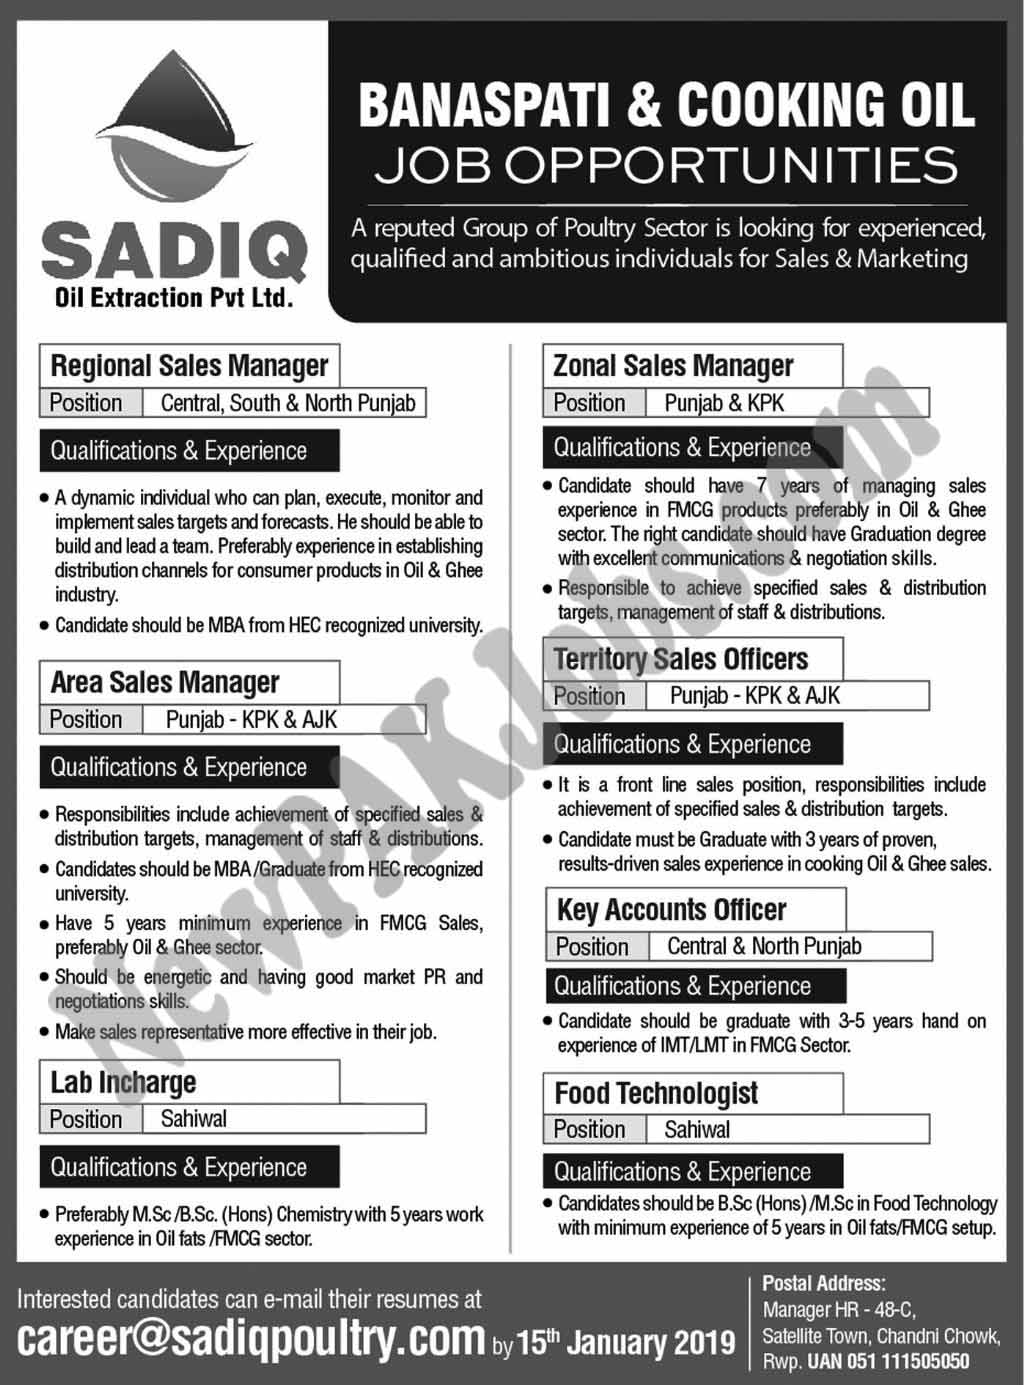 New Jobs in Sadiq Banspati and Cooking Oil 08 Jan 2019 newpakjobs